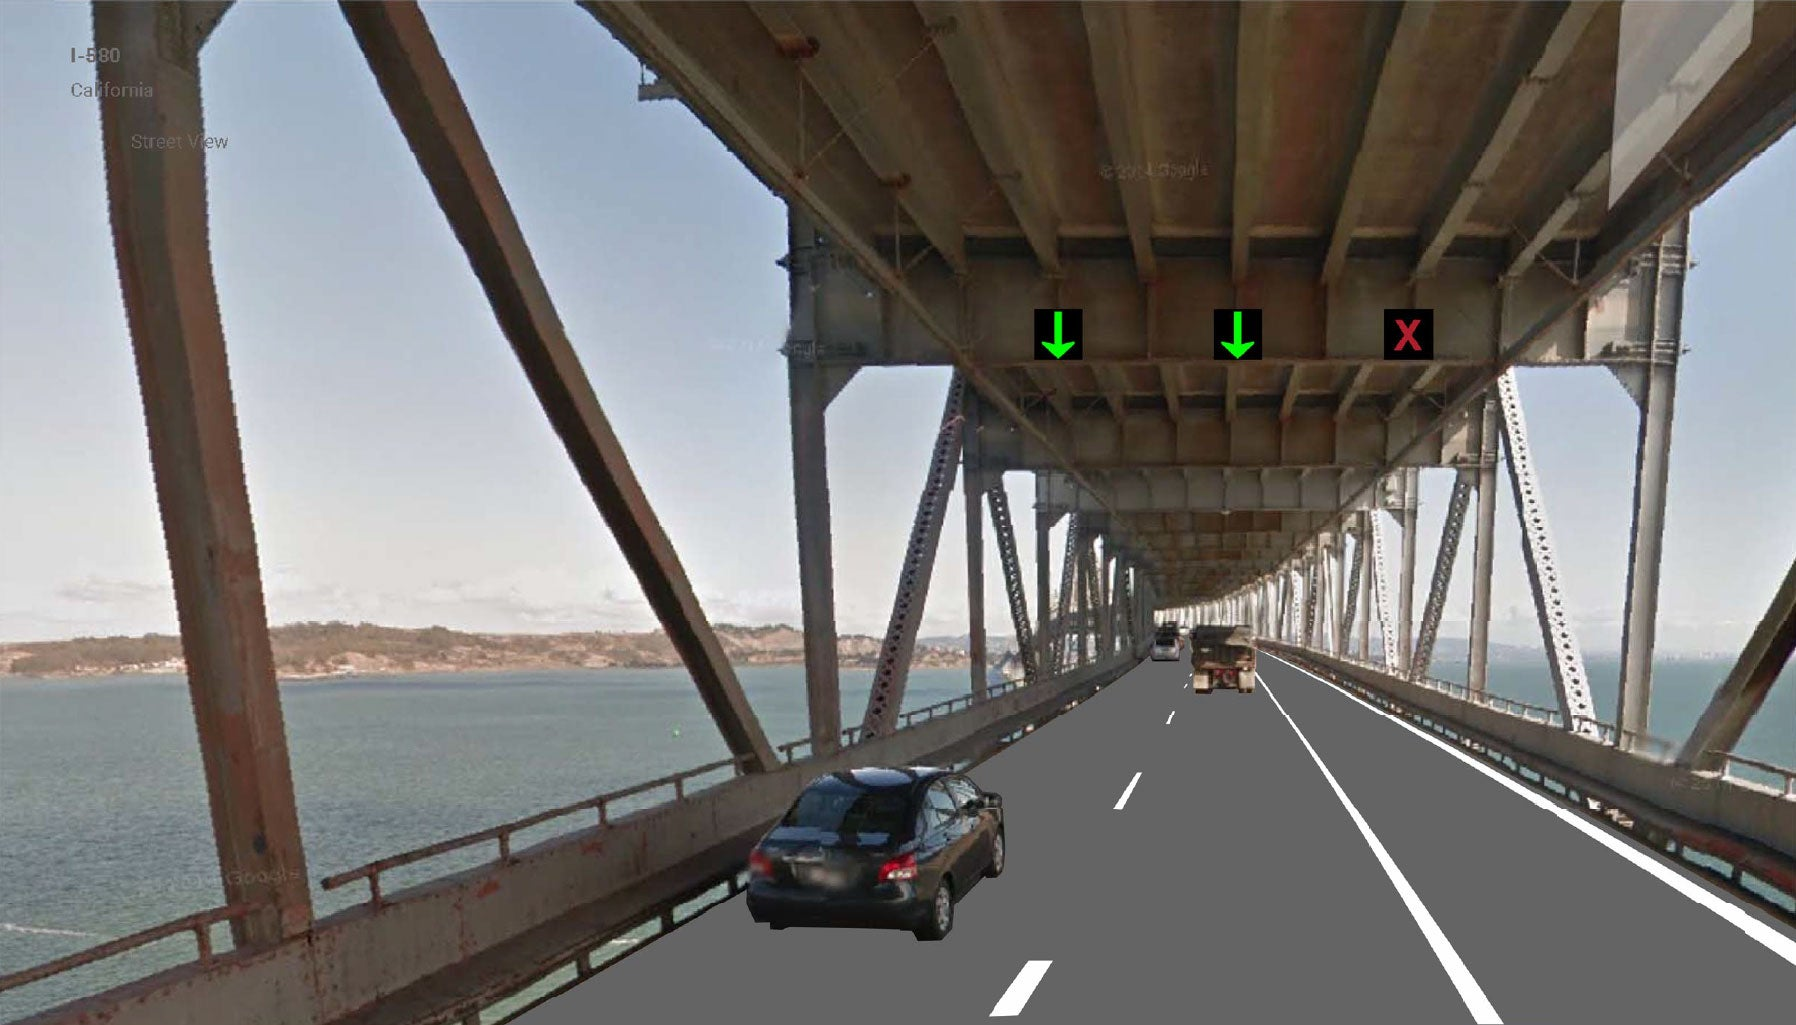 The shoulder of eastbound I-580 on the Richmond-San Rafael Bridge will be converted to a new, third vehicle lane (seen on the right in this rendering), which will be open to traffic during the afternoon peak hours under the proposed project.